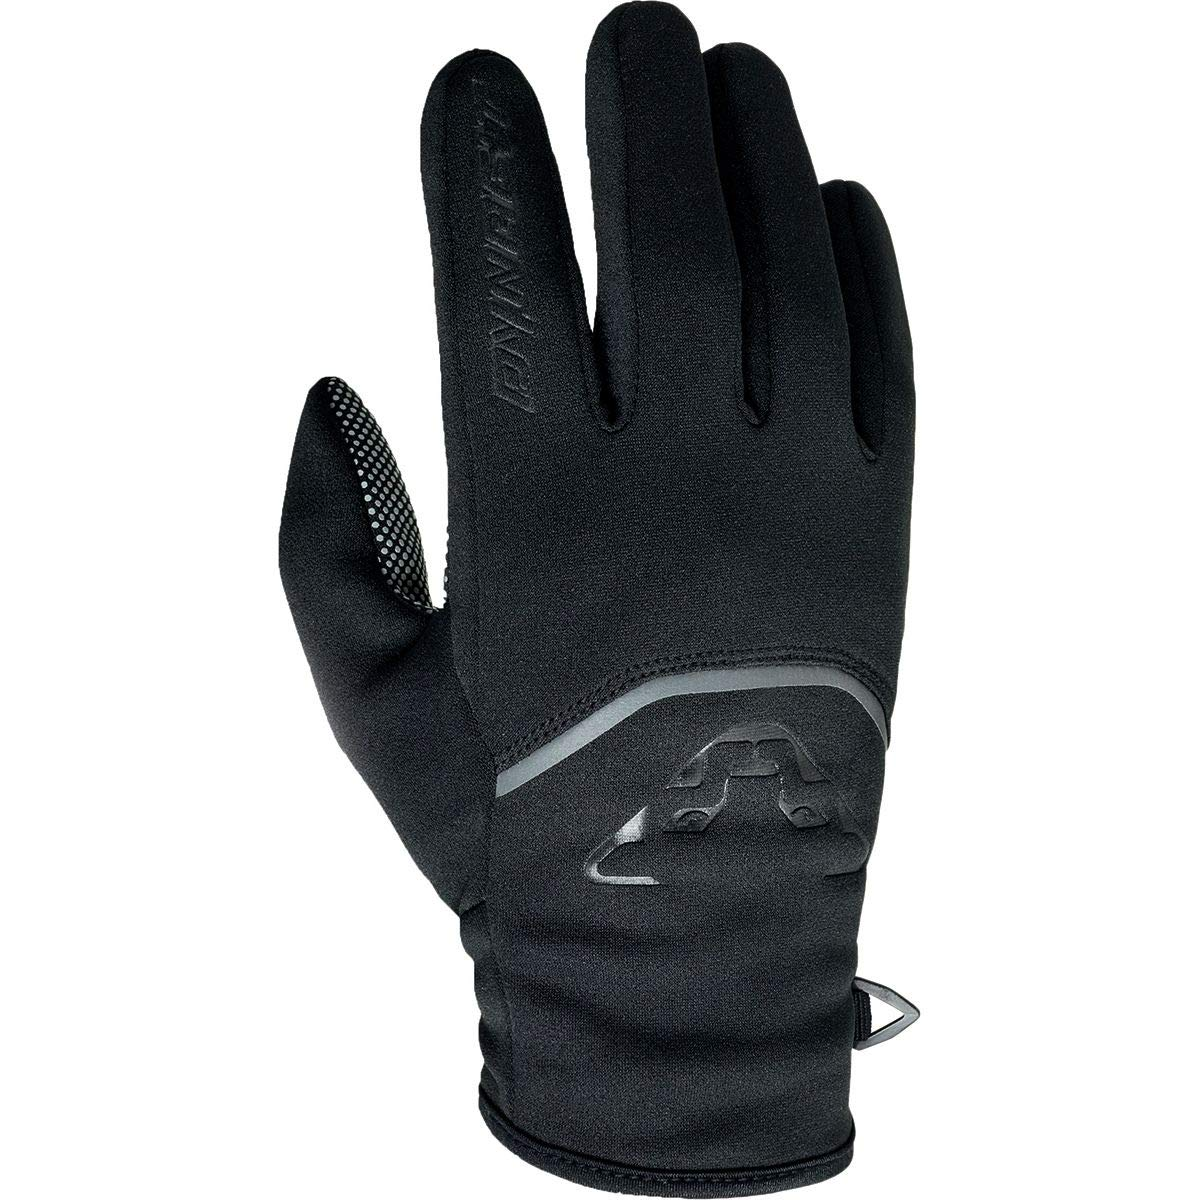 Dynafit Thermal Gloves Black S by Dynafit (Image #1)